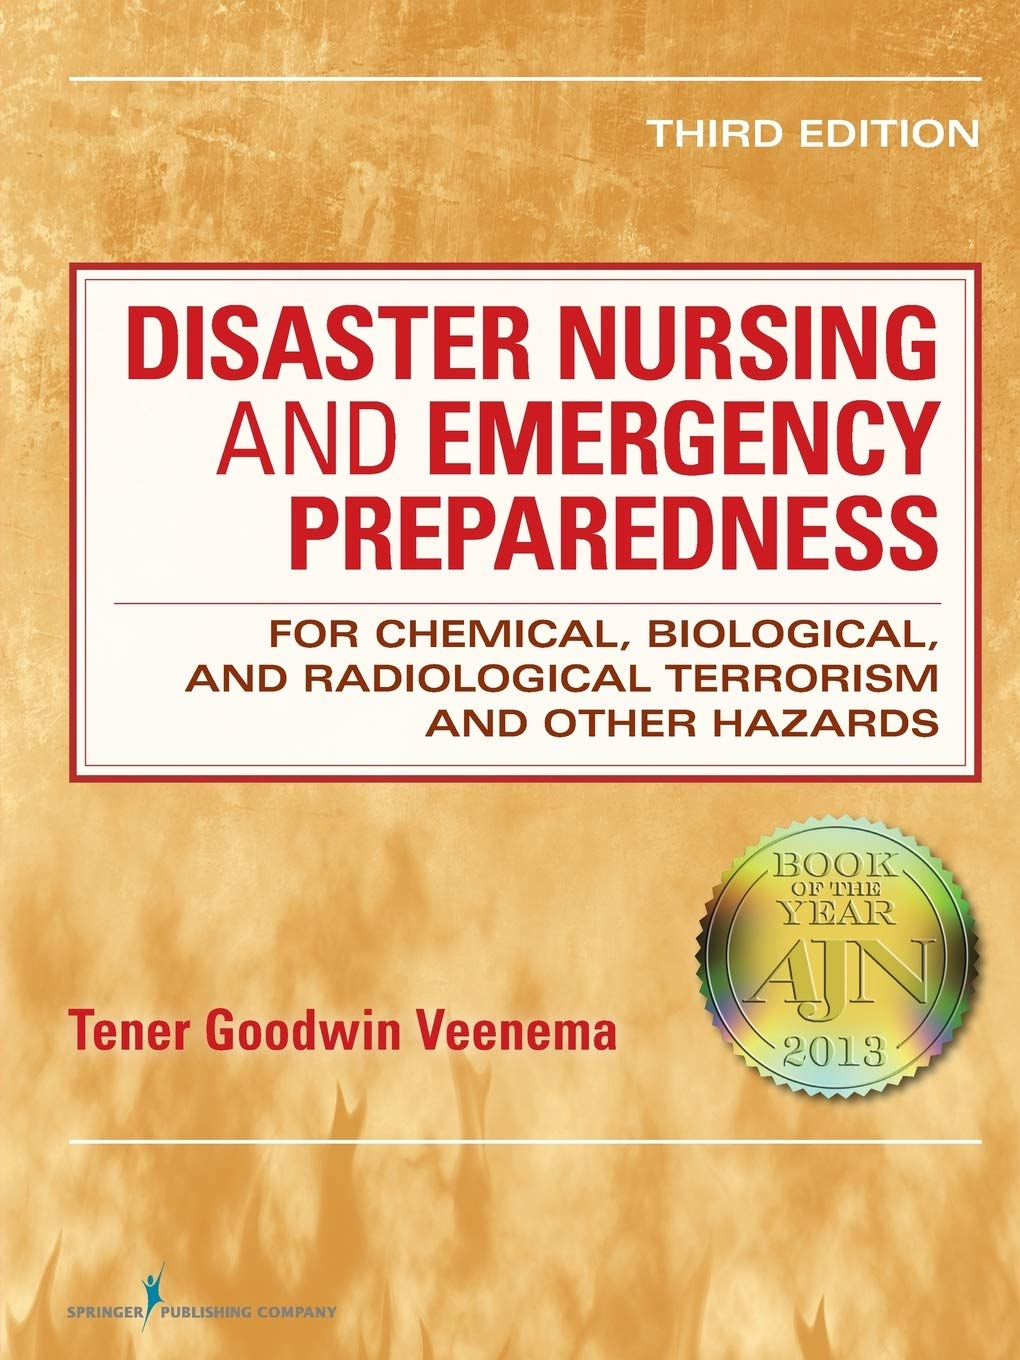 Disaster Nursing and Emergency Preparedness: for Chemical ... on flood disaster plan, sample disaster plan, conflict resolution plan, risk communications plan, disaster continuity plan, writing a media plan, real estate plan, hospital disaster plan, disaster evacuation plan, funny disaster plan, disaster management plan, disaster plan template, disaster preparation plan, employee performance plan, disaster prevention plan, disaster recovery plan, disaster awareness plan, disaster kit, risk reduction plan, company operations plan,